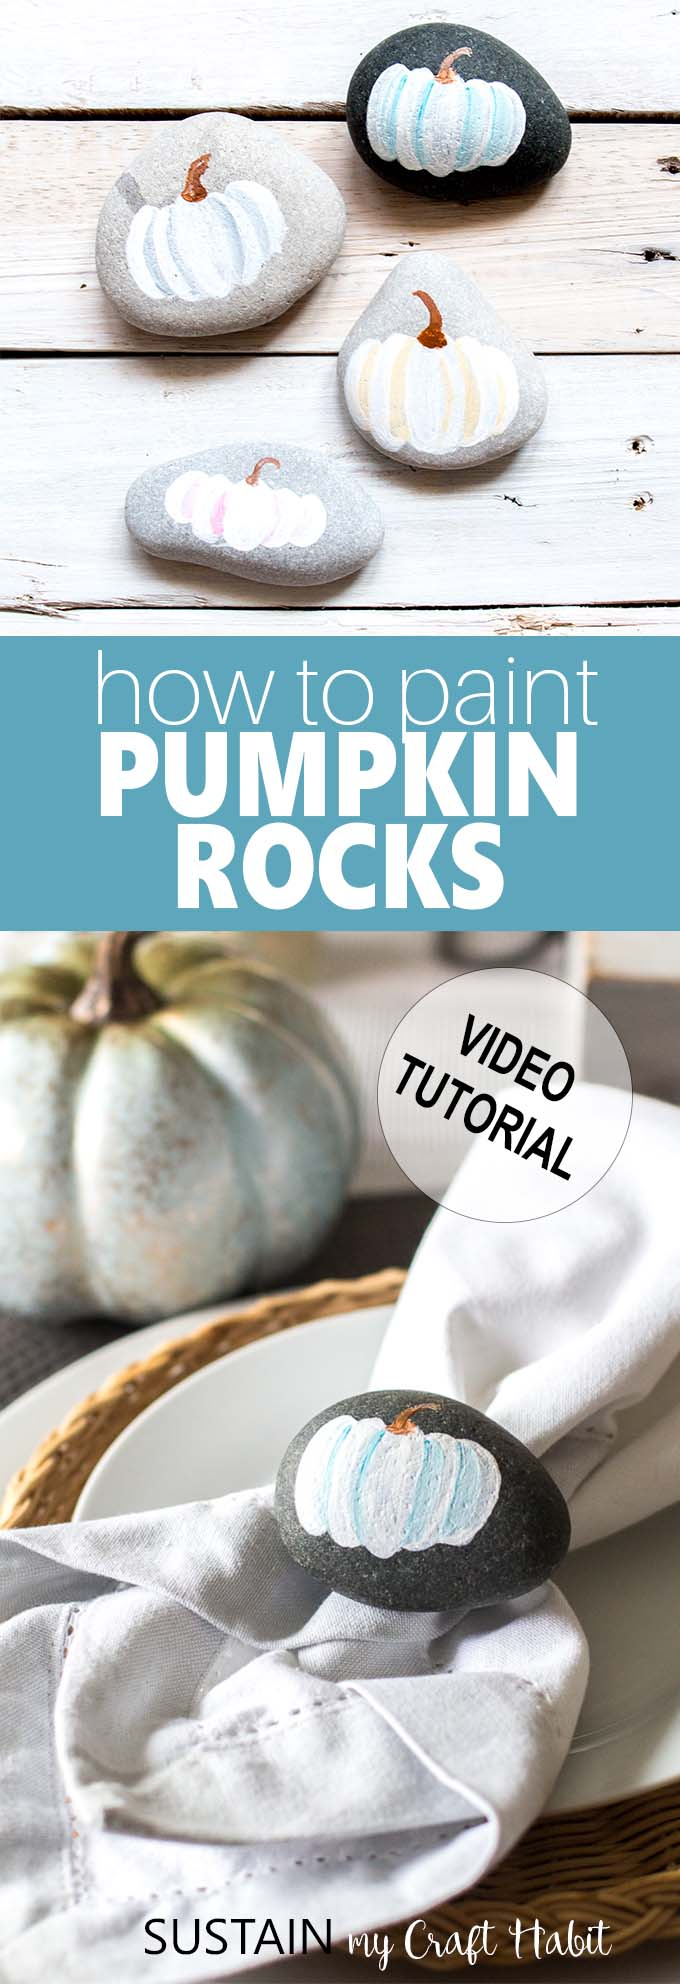 Collage of images showing this simple fall and Thanksgiving rock painting idea. The text overlay states how to paint pumpkin rocks.